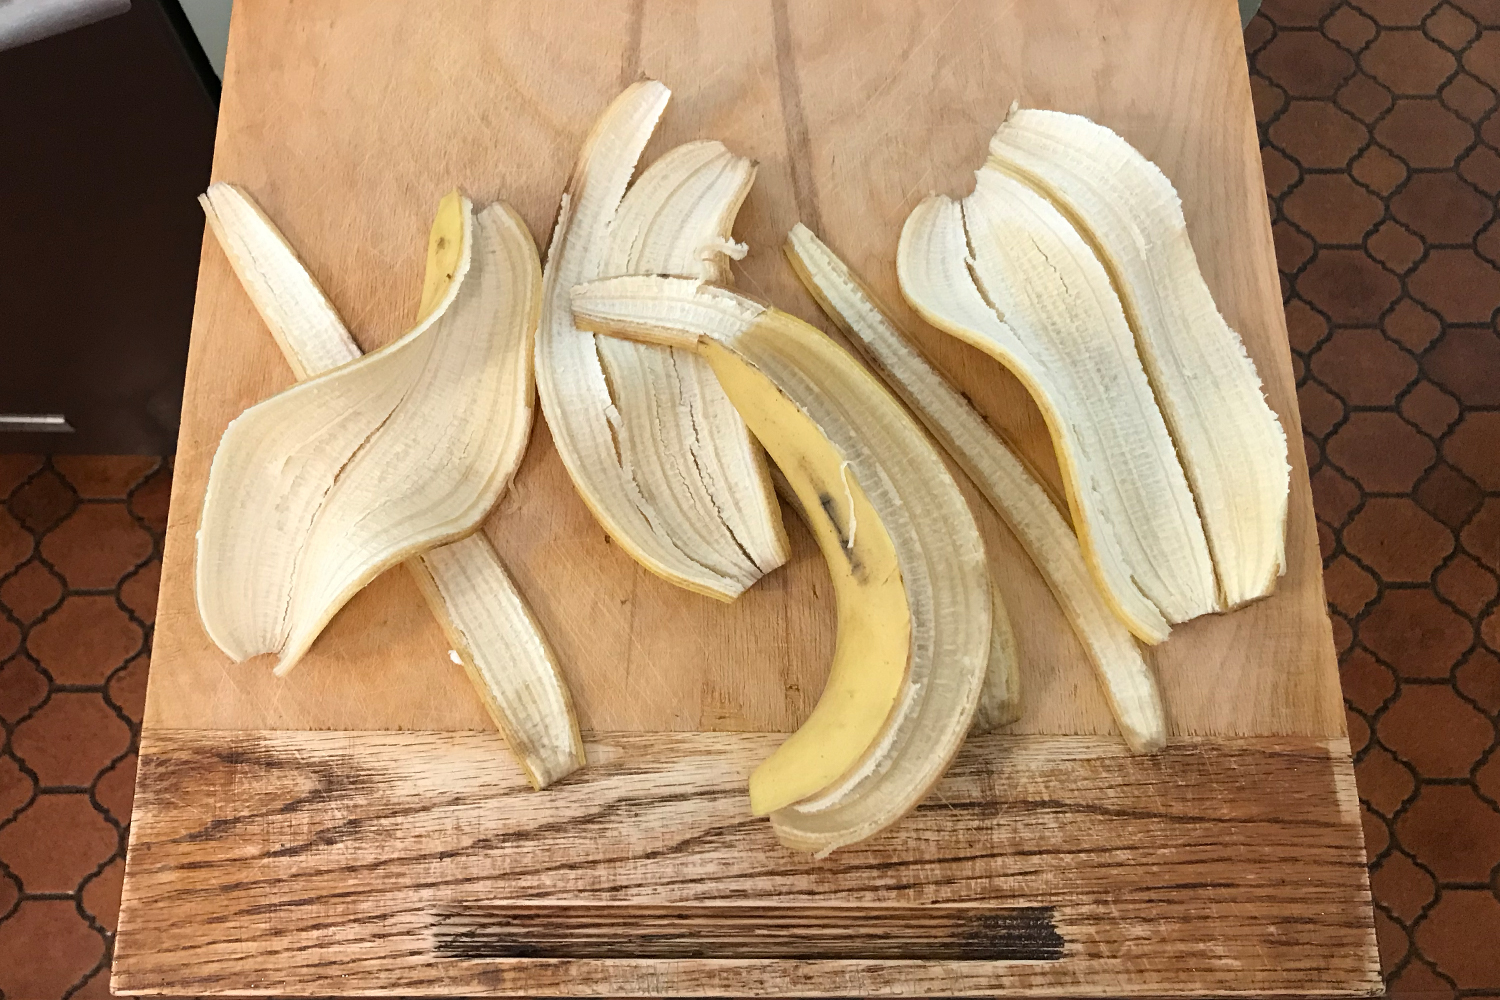 Banana peels without the fruit inside. This is the first step in a recipe for banana peel bacon, a polarizing fake meat dish.